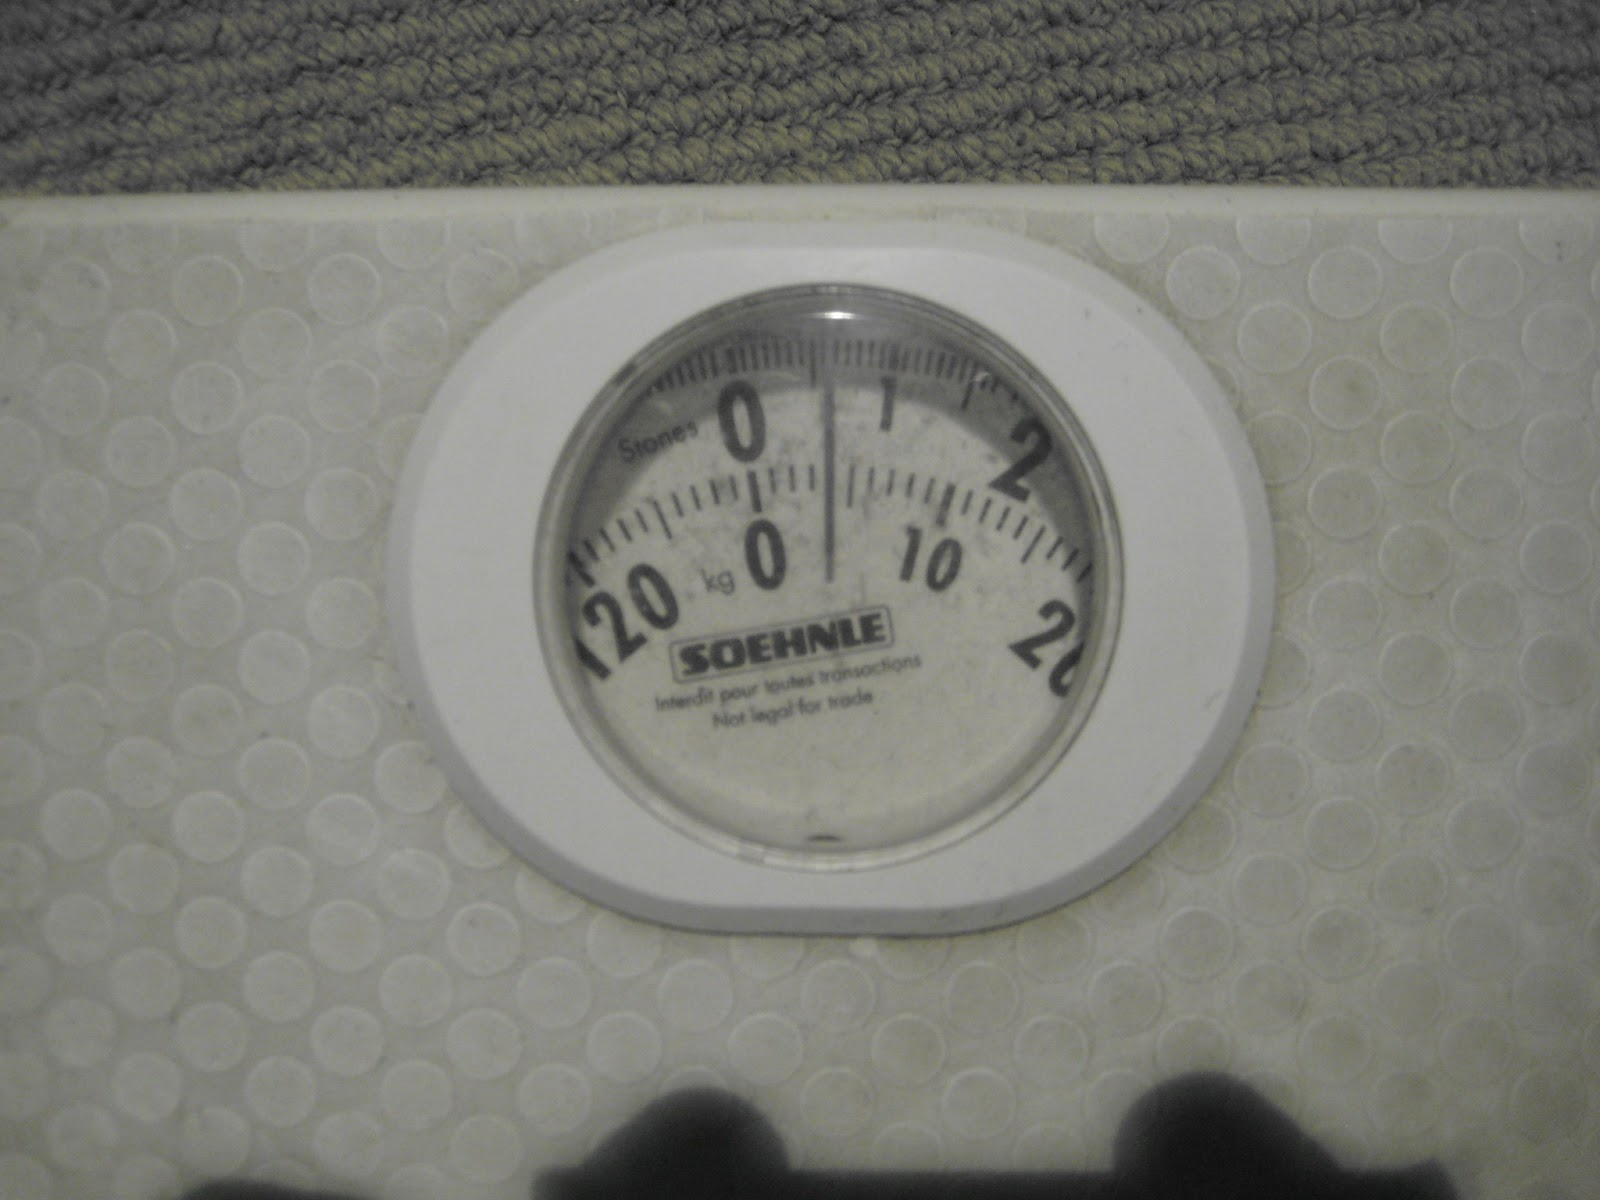 Alex's Cycle Blog: The bathroom scale analogy